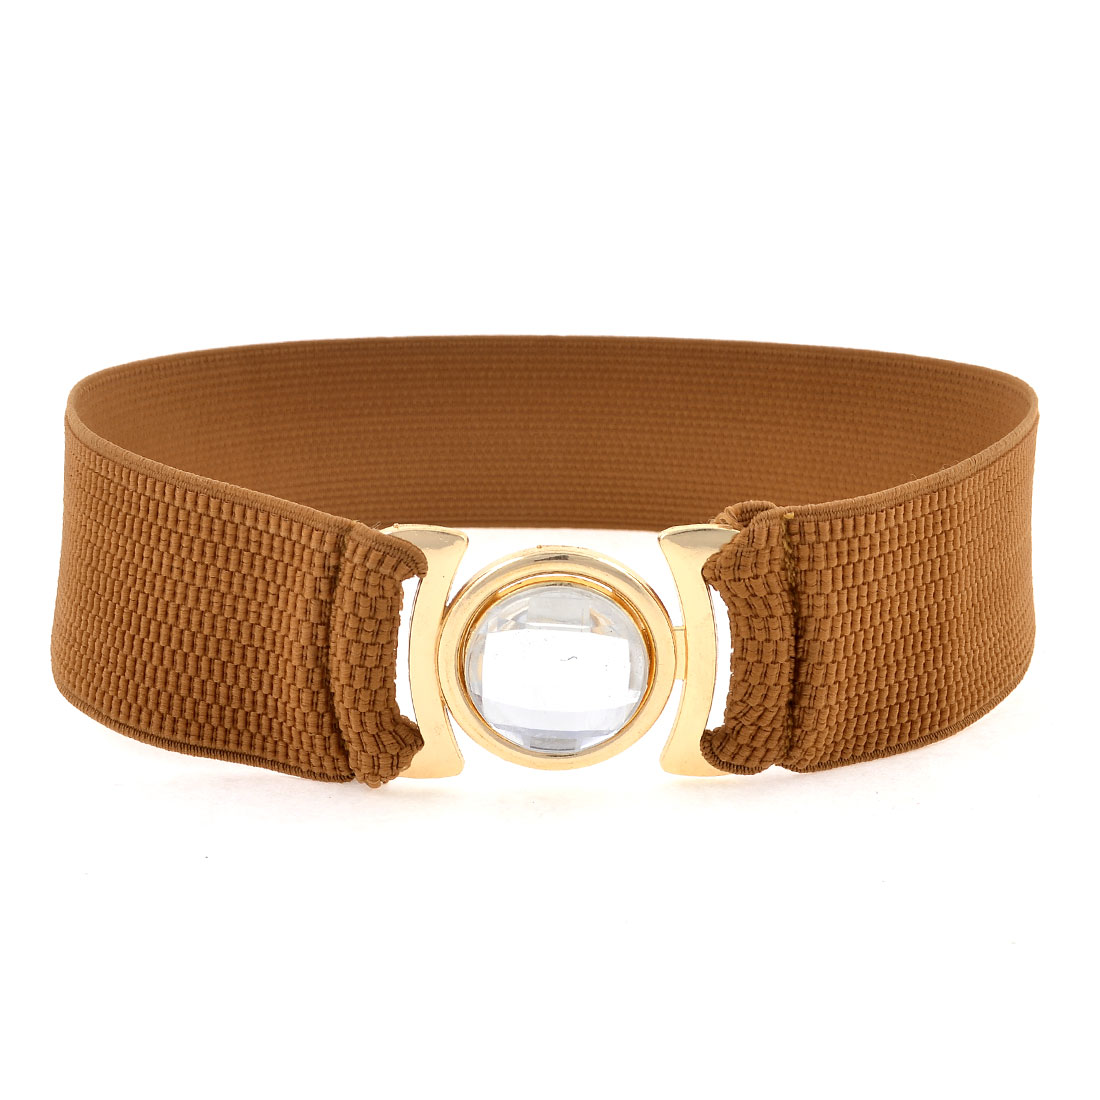 Ladies Metal Interlock Buckle 4.9cm Wide Stretchy Cinch Belt Waist Band Brown